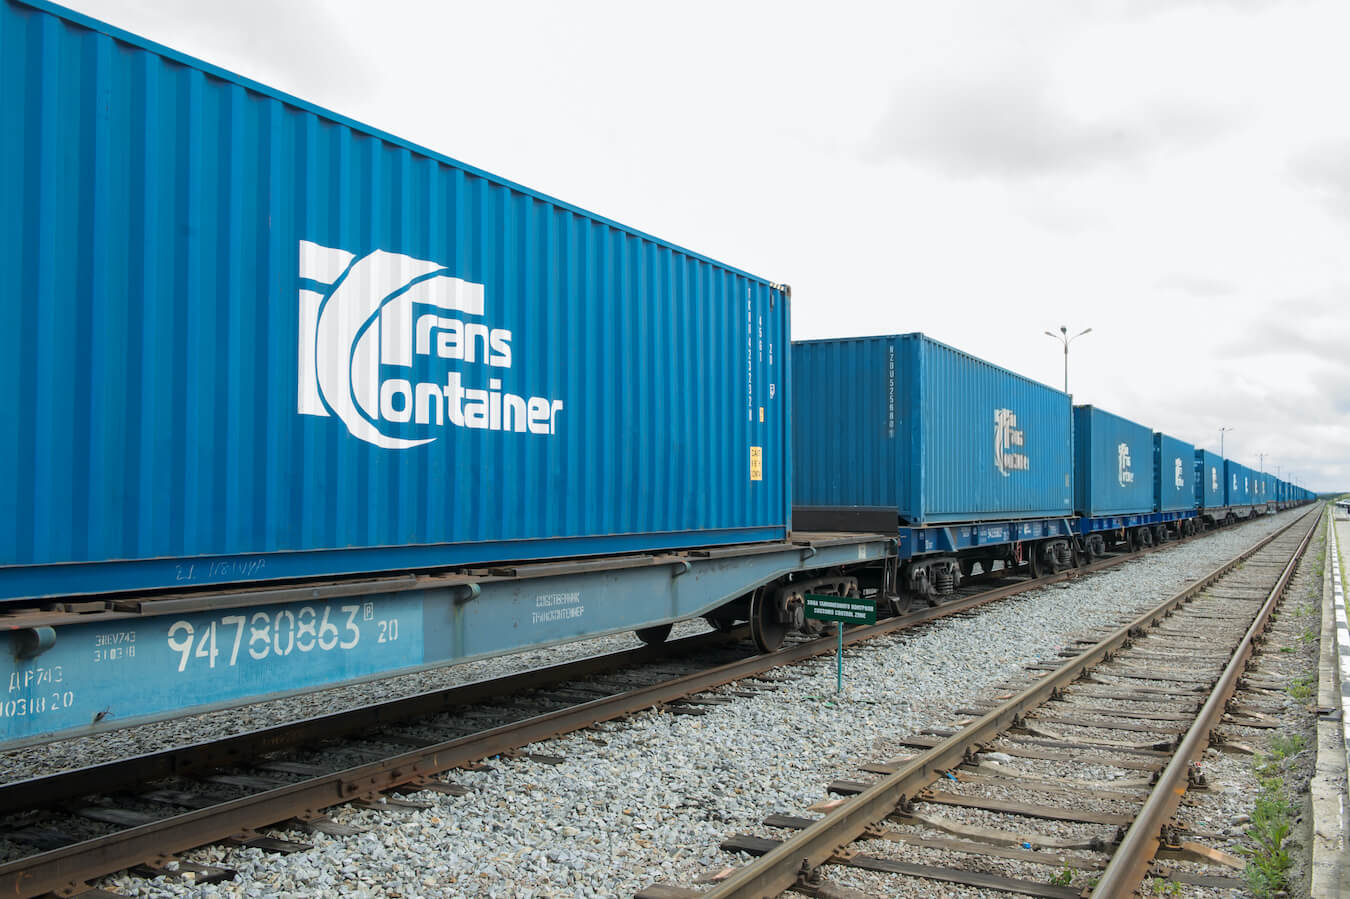 TransContainer trails the carriage of bulk goods in containers to China